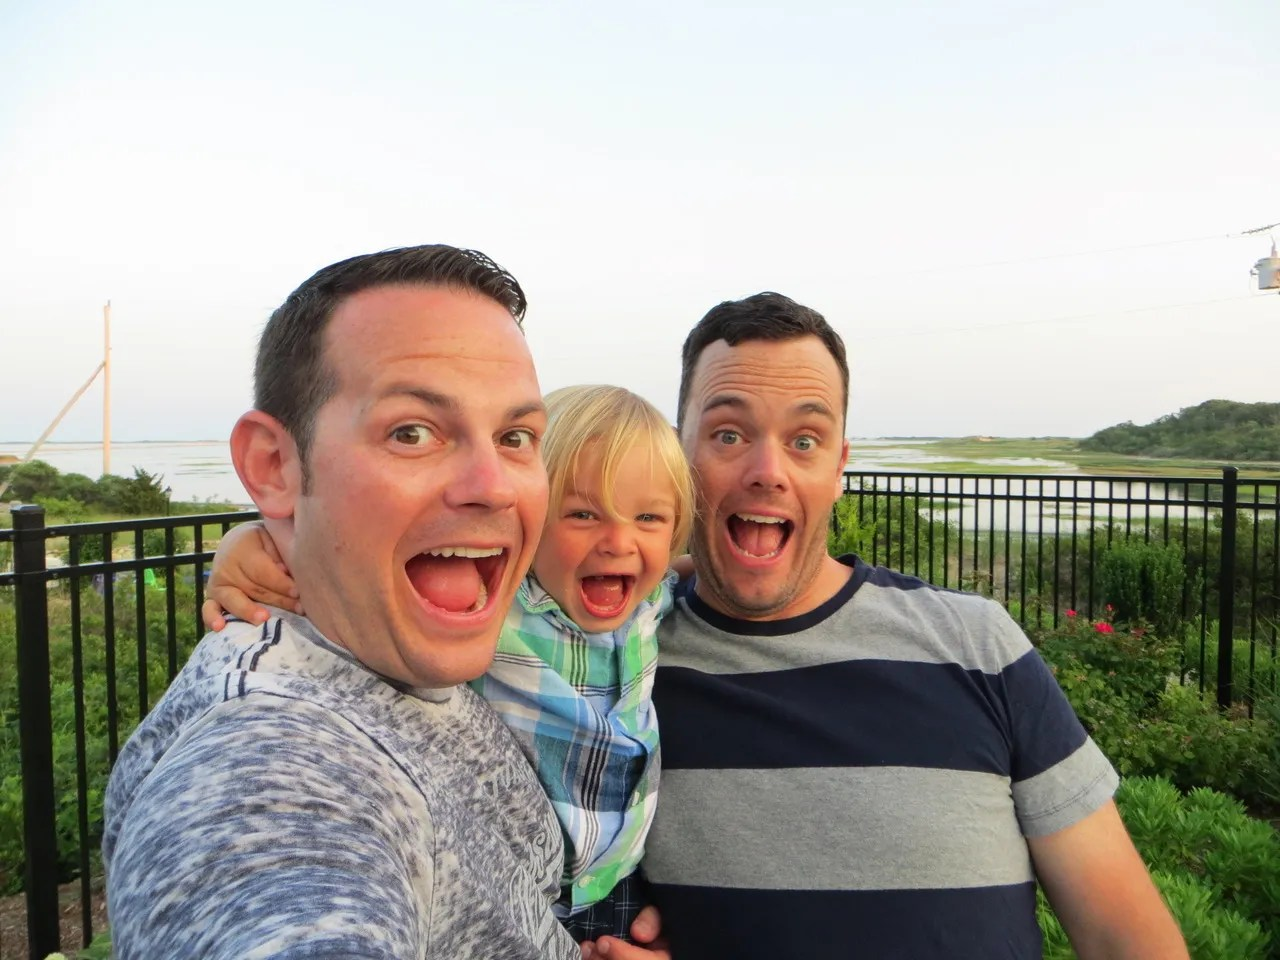 LeeMichael McLean and Bryan Furze pose with their son. During more than five years of harassment, about 30 pieces of mail with homophobic fake names on them were sent to the couple's home in Milton, Massachusetts.